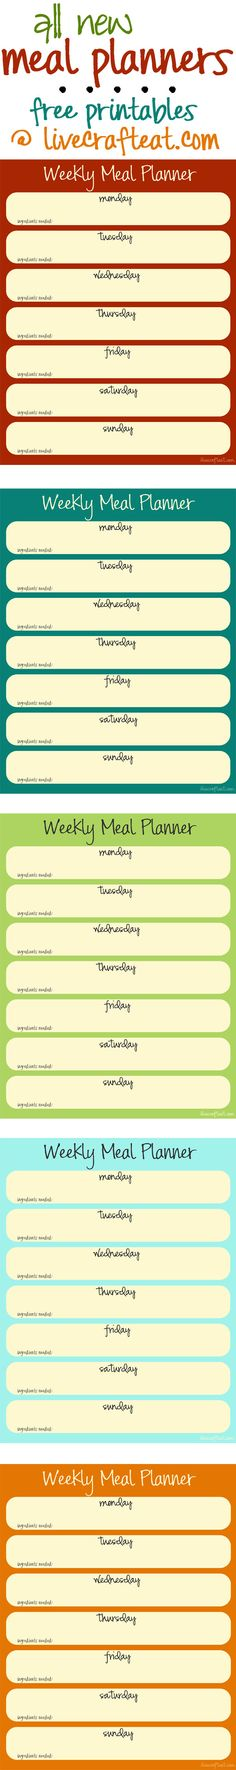 here is another set of colorful menu planners for FREE from livecrafteat.com! love 'em.